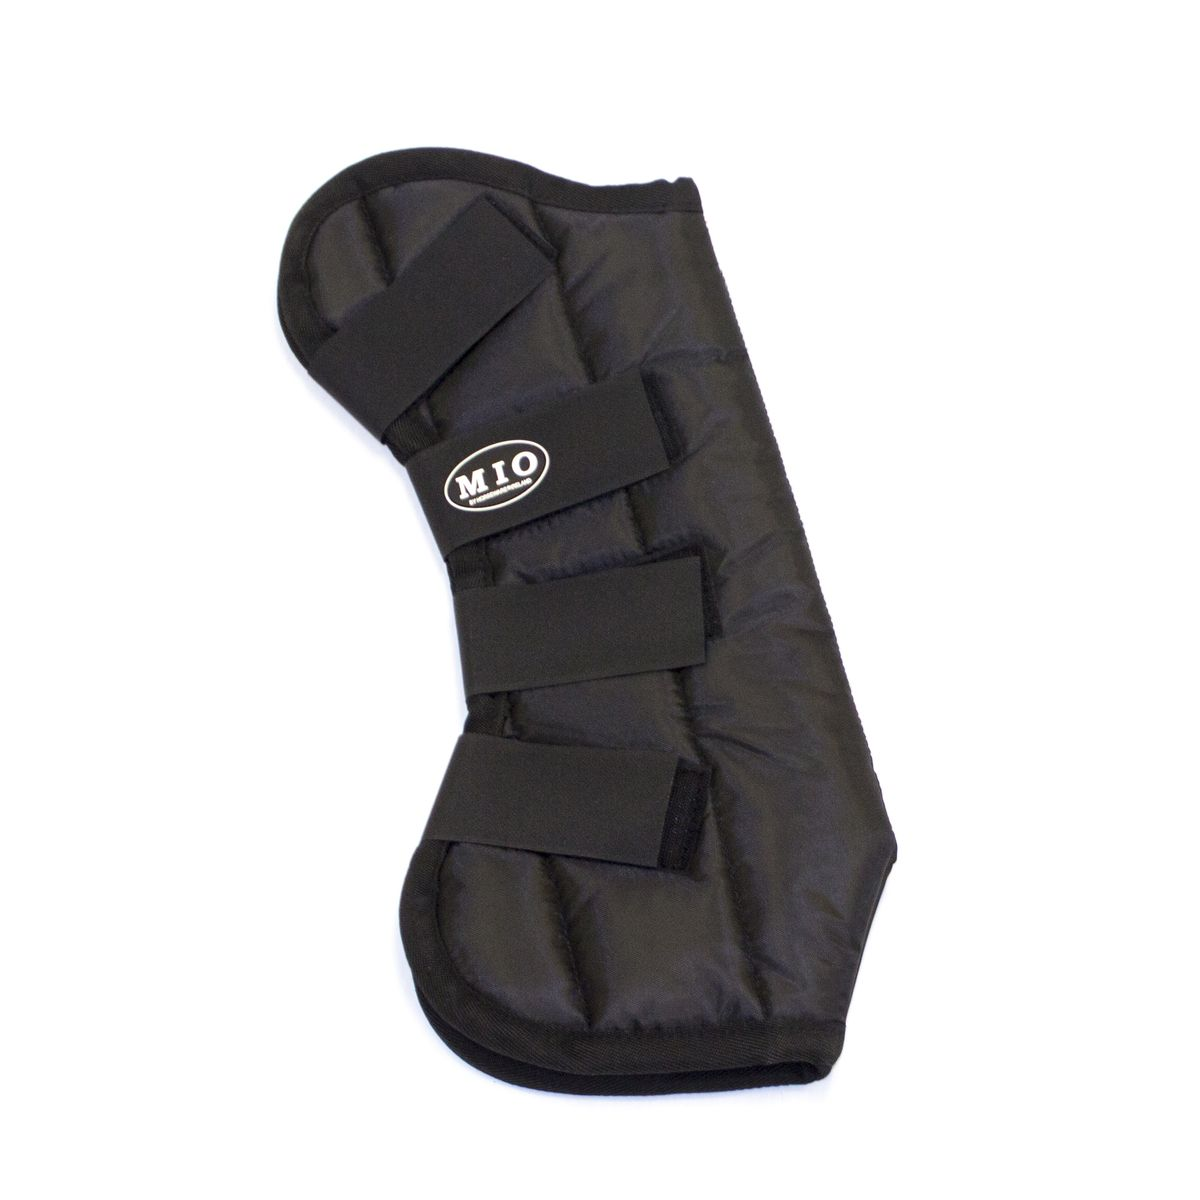 Horseware Ireland Mio Travel Stiefel Stiefel Stiefel Water Resistant for Shipping Horses 5ebbe2